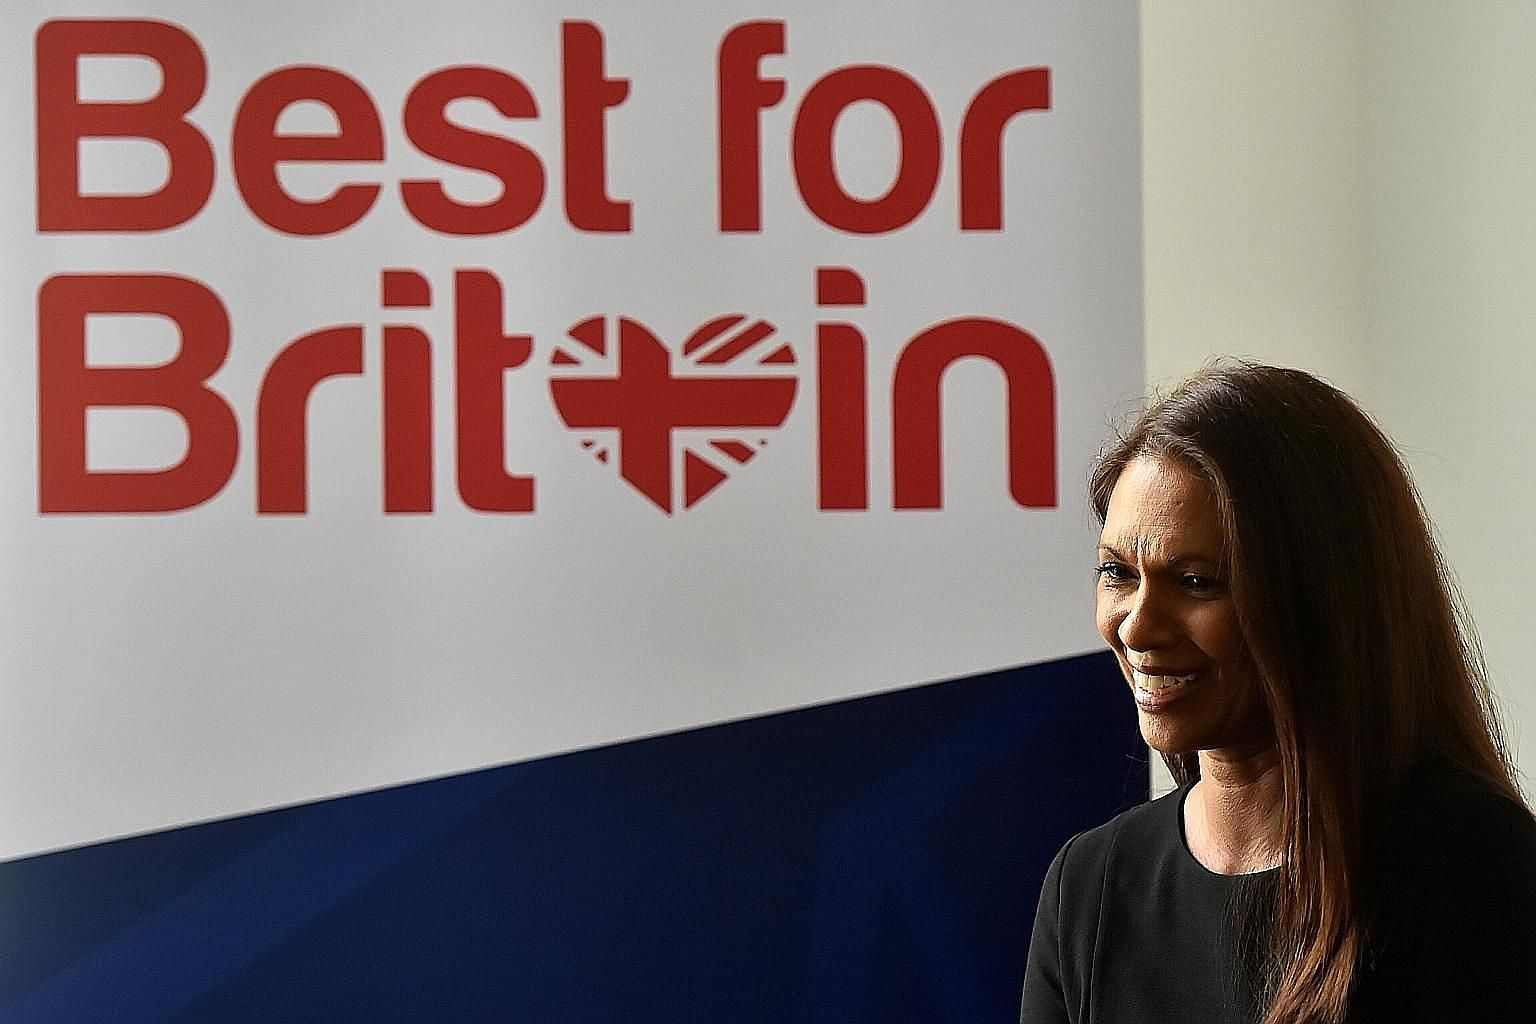 """Pro-EU campaigner Gina Miller yesterday said she would use £300,000 (S$537,000) raised in a campaign to encourage Britons to vote tactically for candidates in the upcoming general election who oppose a """"hard Brexit""""."""